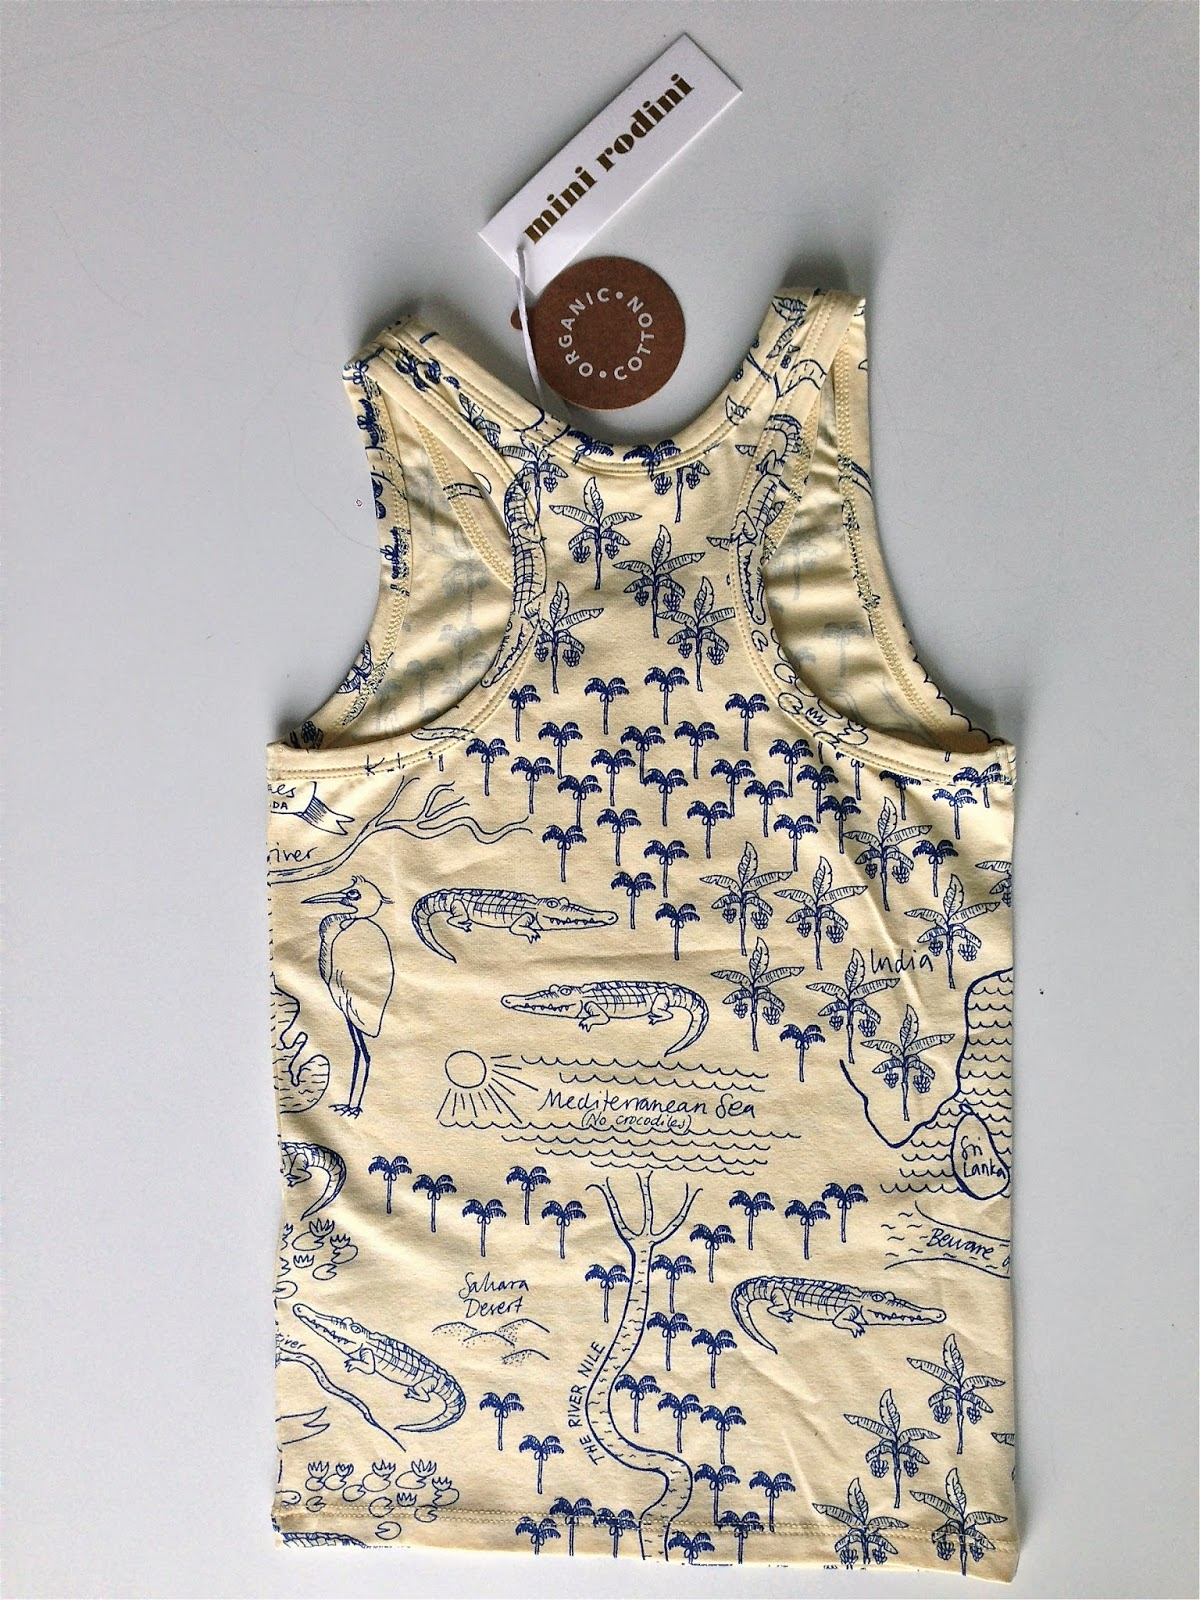 Mini Rodini ss15, croco map tank